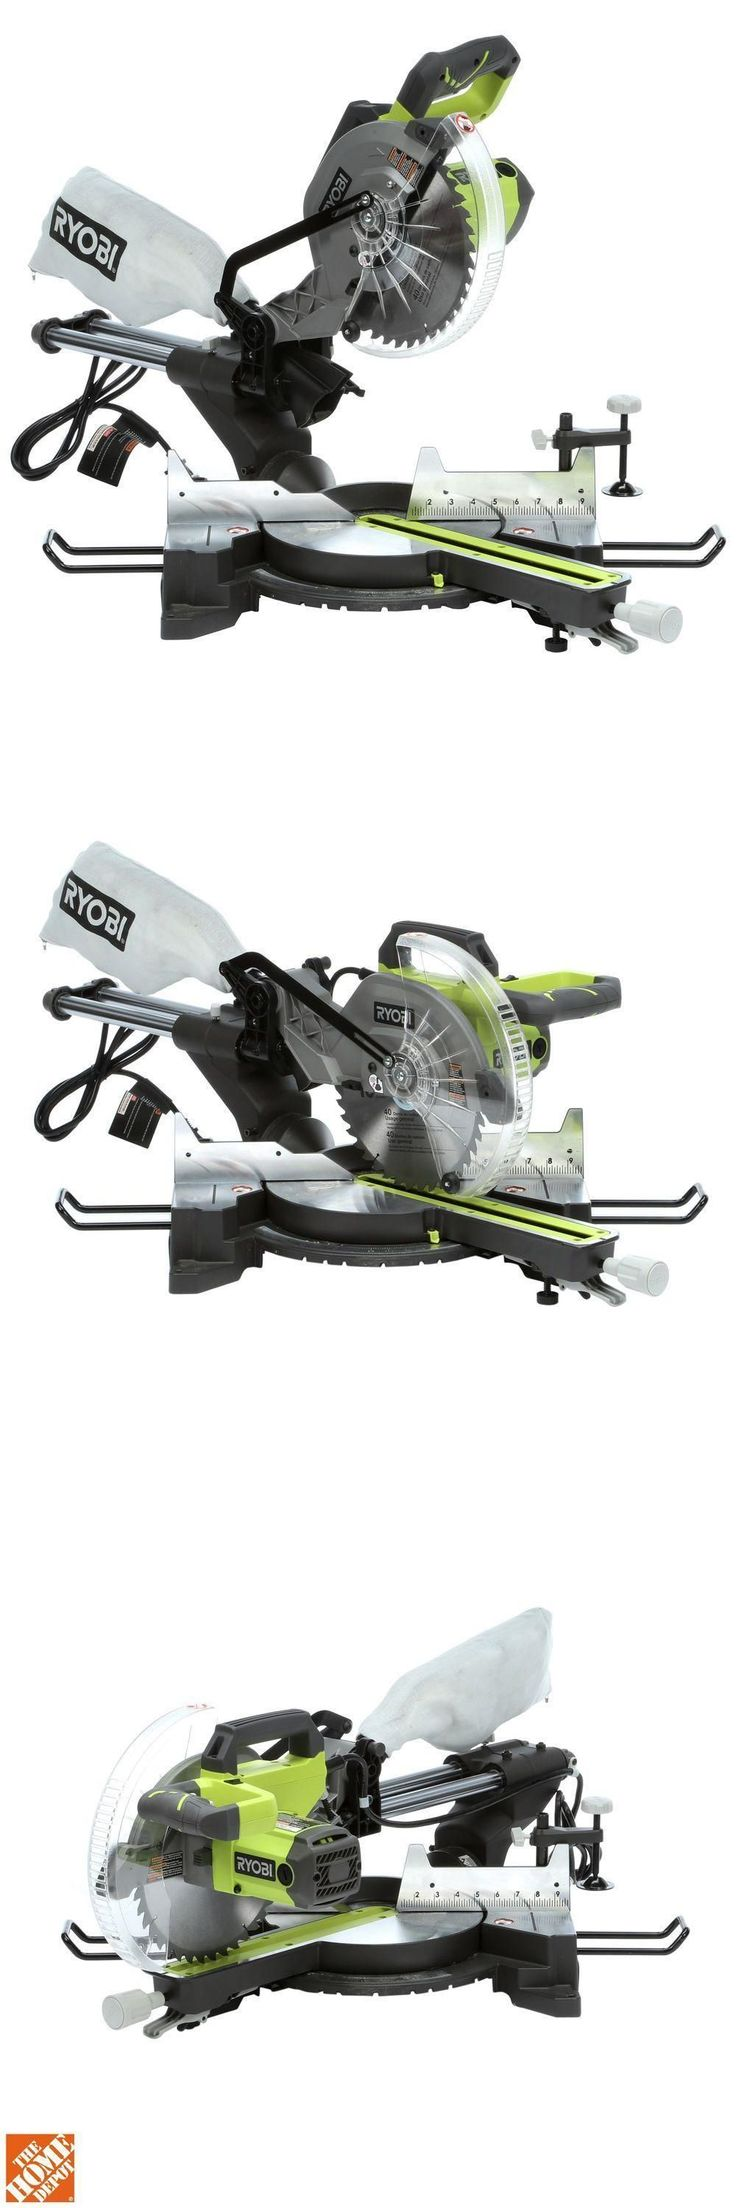 Miter and Chop Saws 20787: Miter Saw,15-Amp 10-Inch Sliding Compound Single Bevel Corded Miter Saw W Laser -> BUY IT NOW ONLY: $199 on eBay!